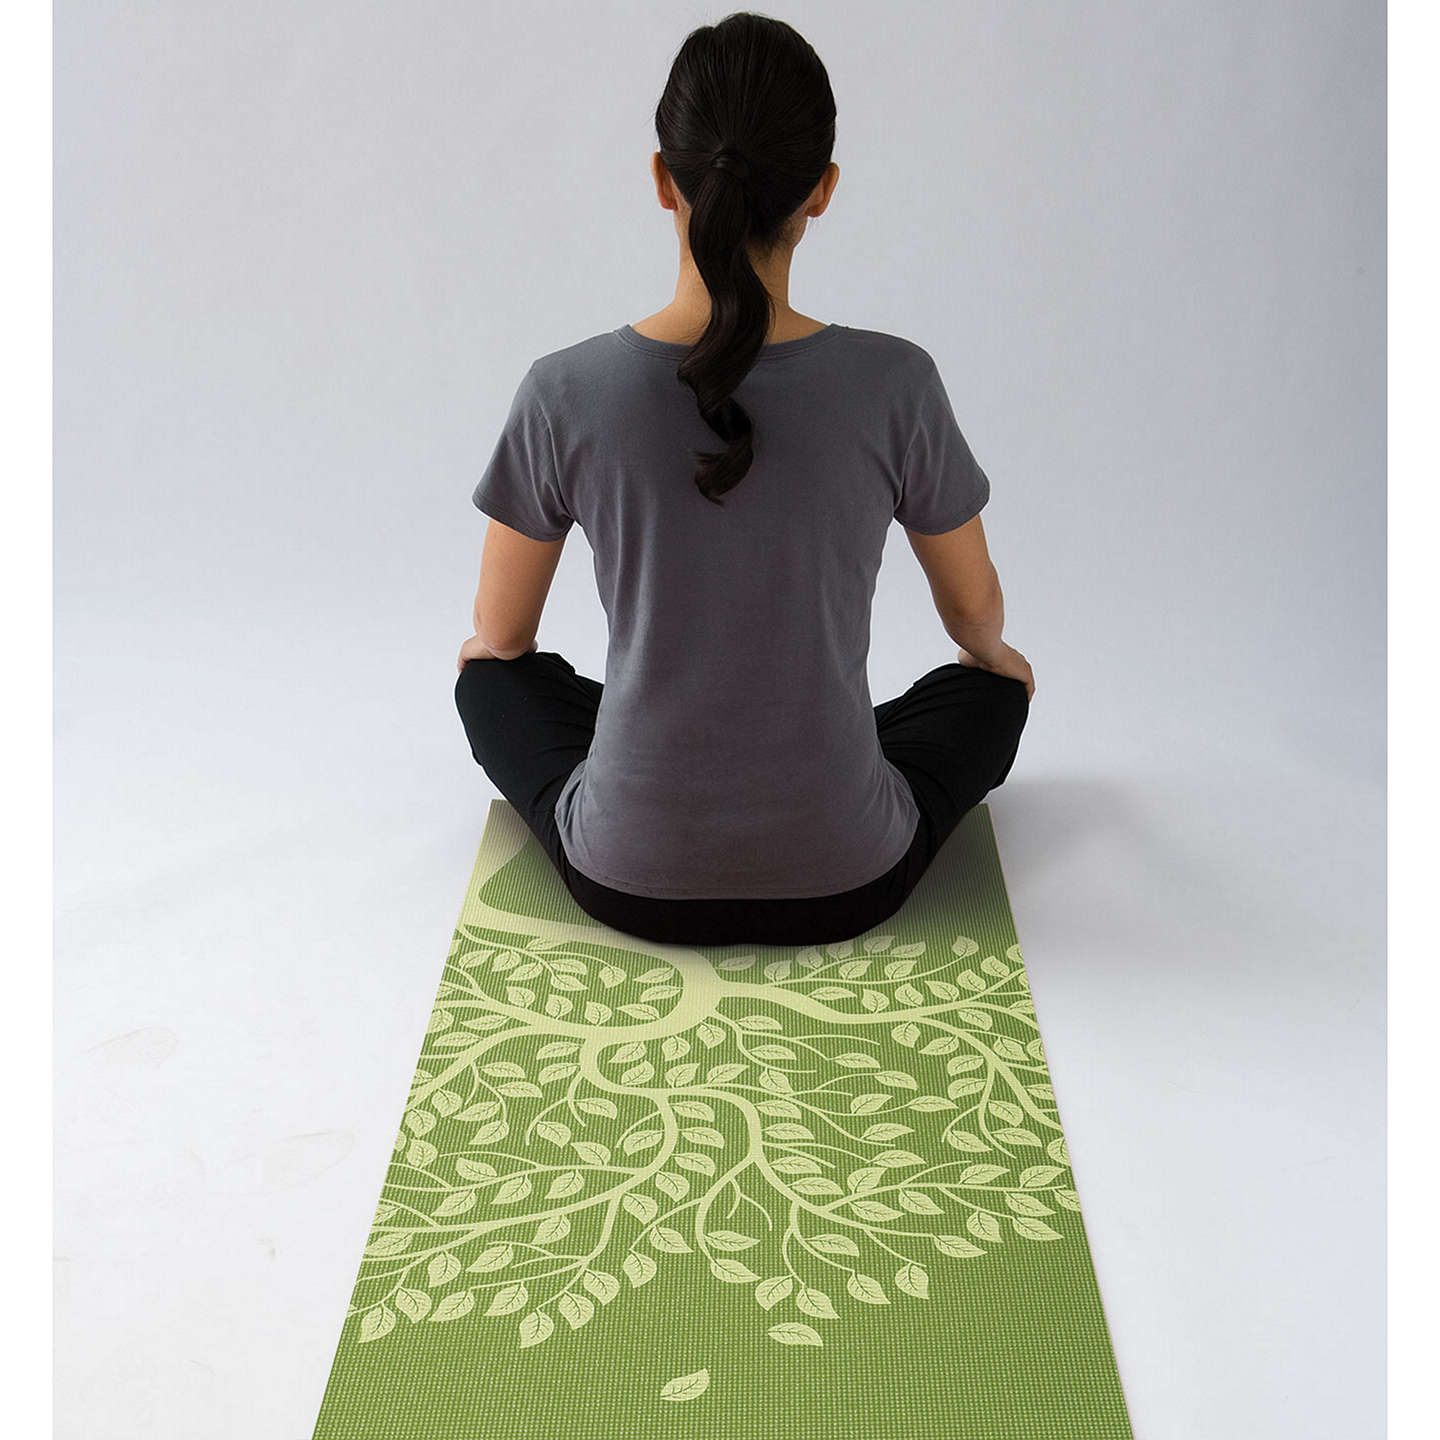 Gaiam Tree Of Life Printed 3mm Yoga Mat, Green At John Lewis